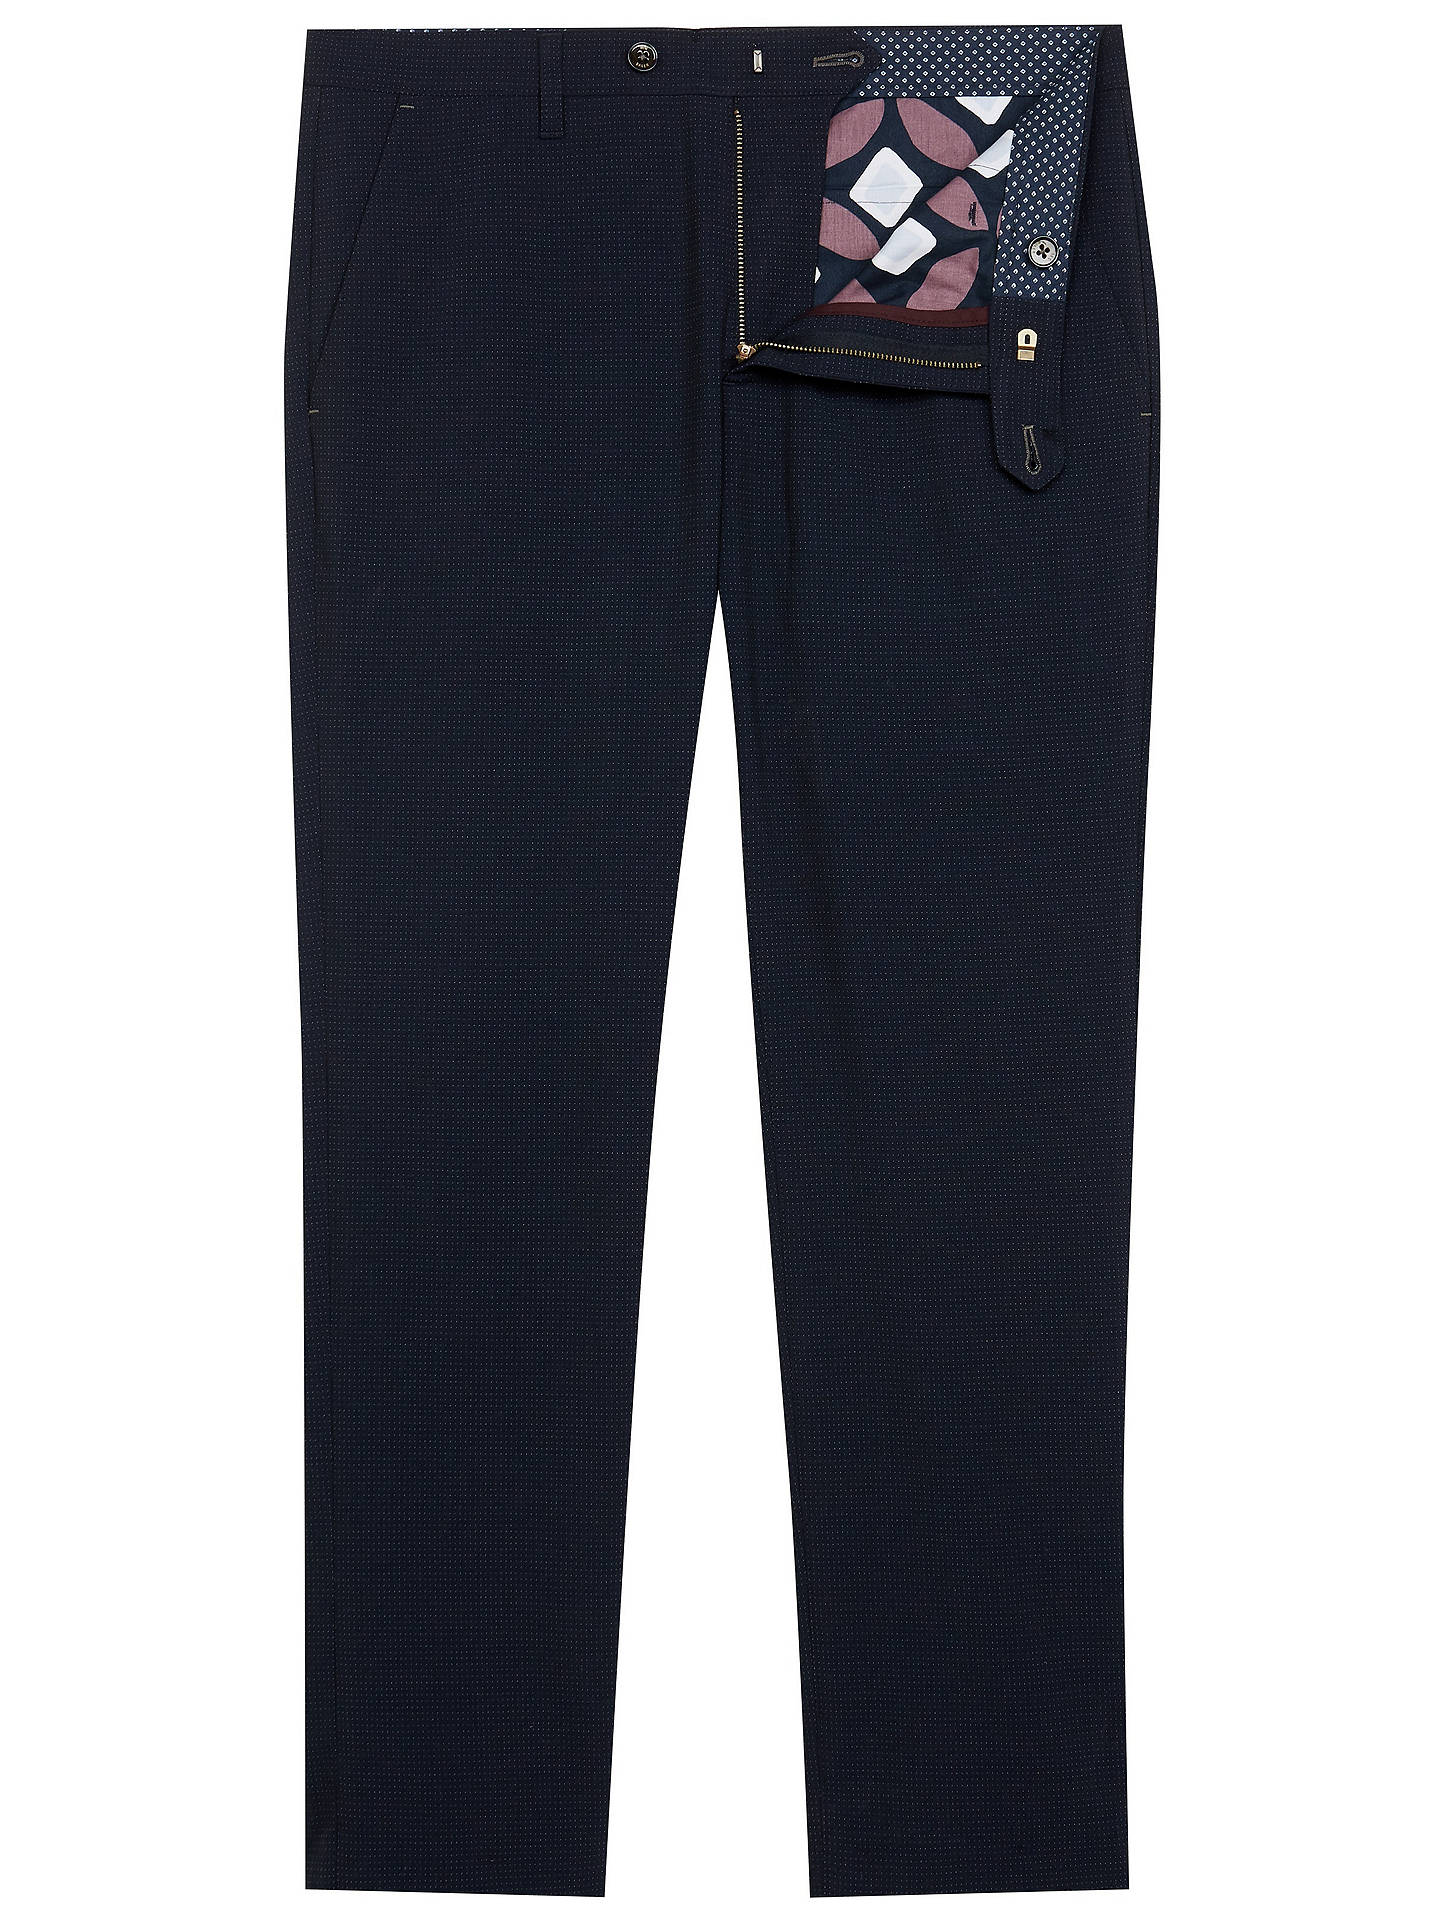 BuyTed Baker Lotsdot Slim Fit Spot Trousers, Blue, 38L Online at johnlewis.com